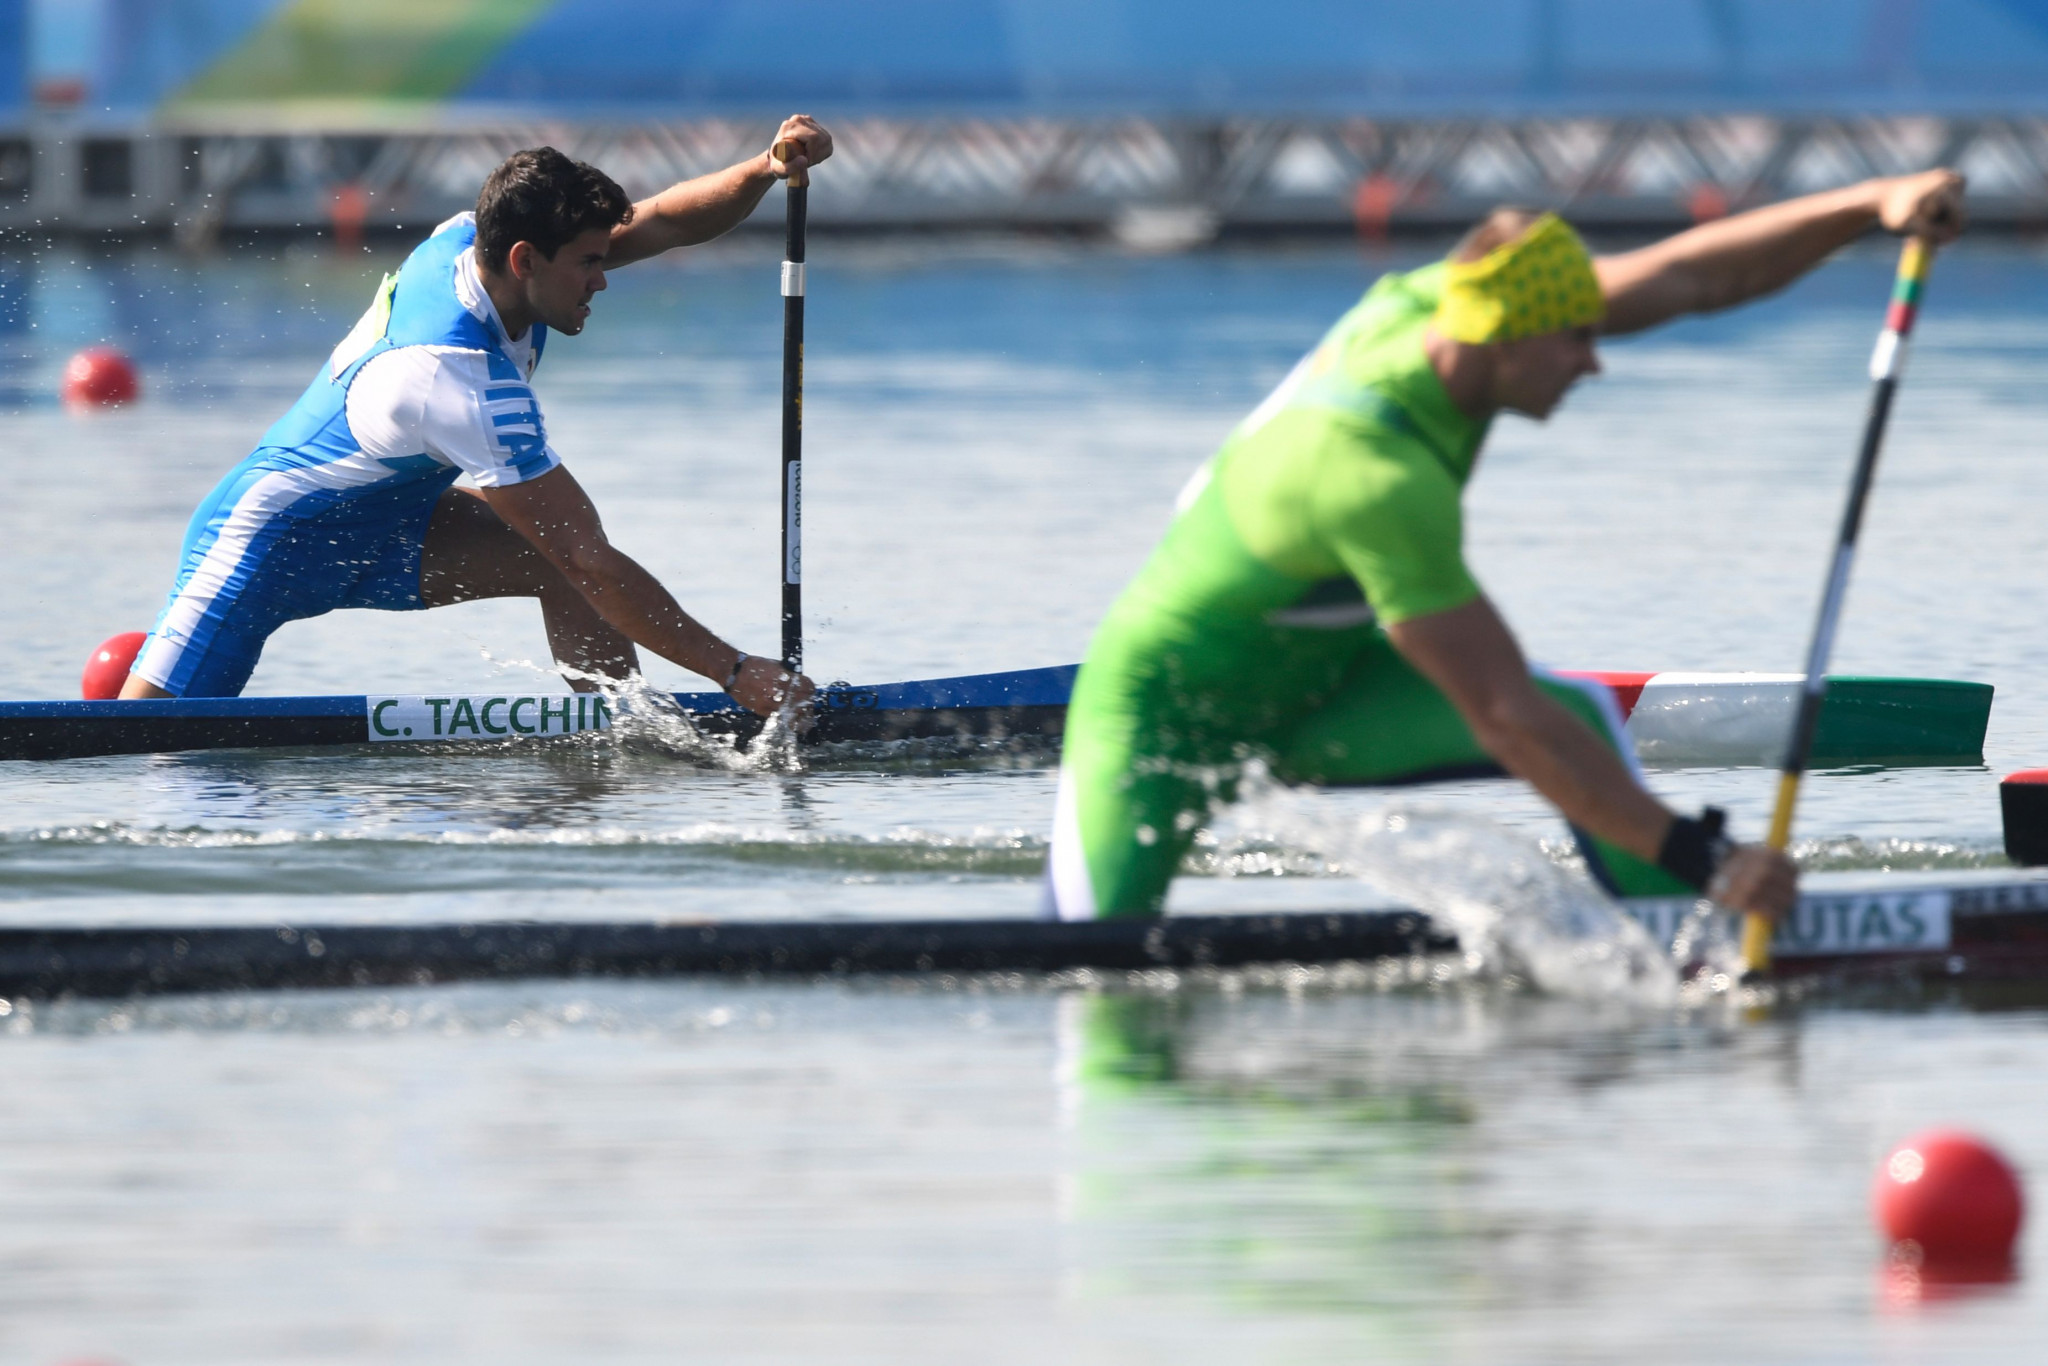 Italy's Carlo Tacchini was quickest in the men's C1 1,000m heats ©Getty Images